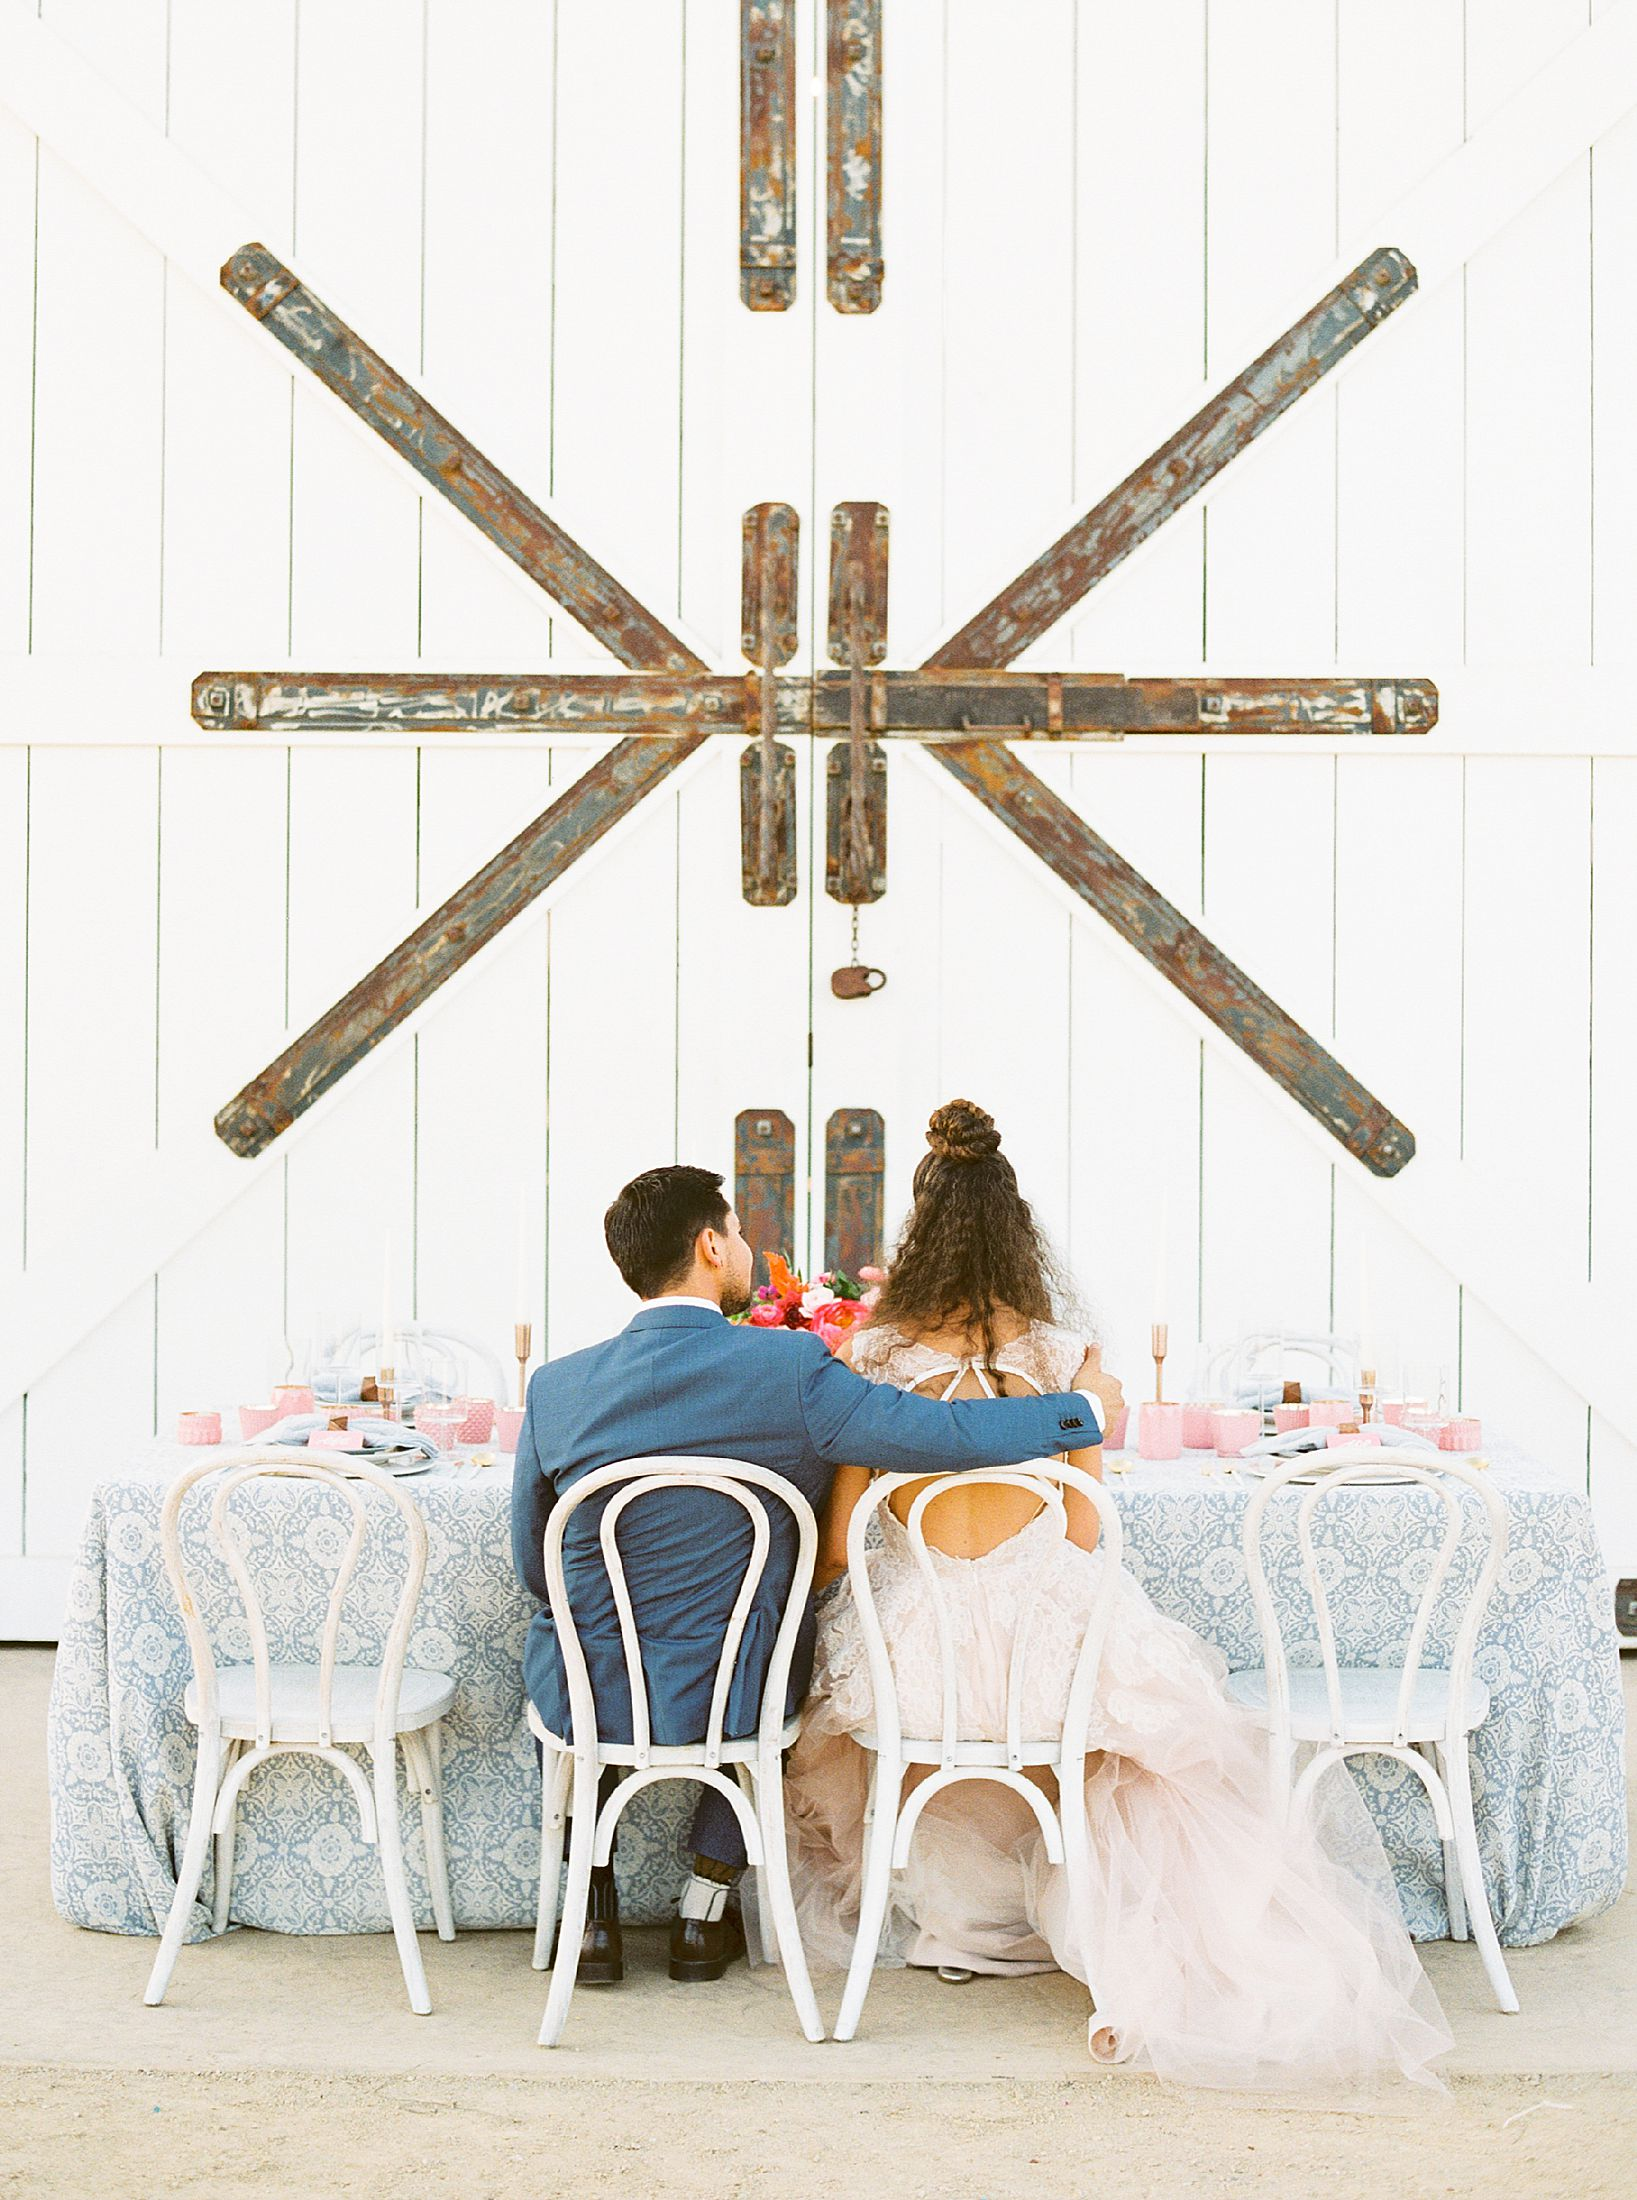 White Barn Edna Valley Wedding Inspiration - San Luis Obispo Wedding - Featured on Green Wedding Shoes - Ashley Baumgartner - FM Events SLO - SLO Wedding Photographer_0066.jpg